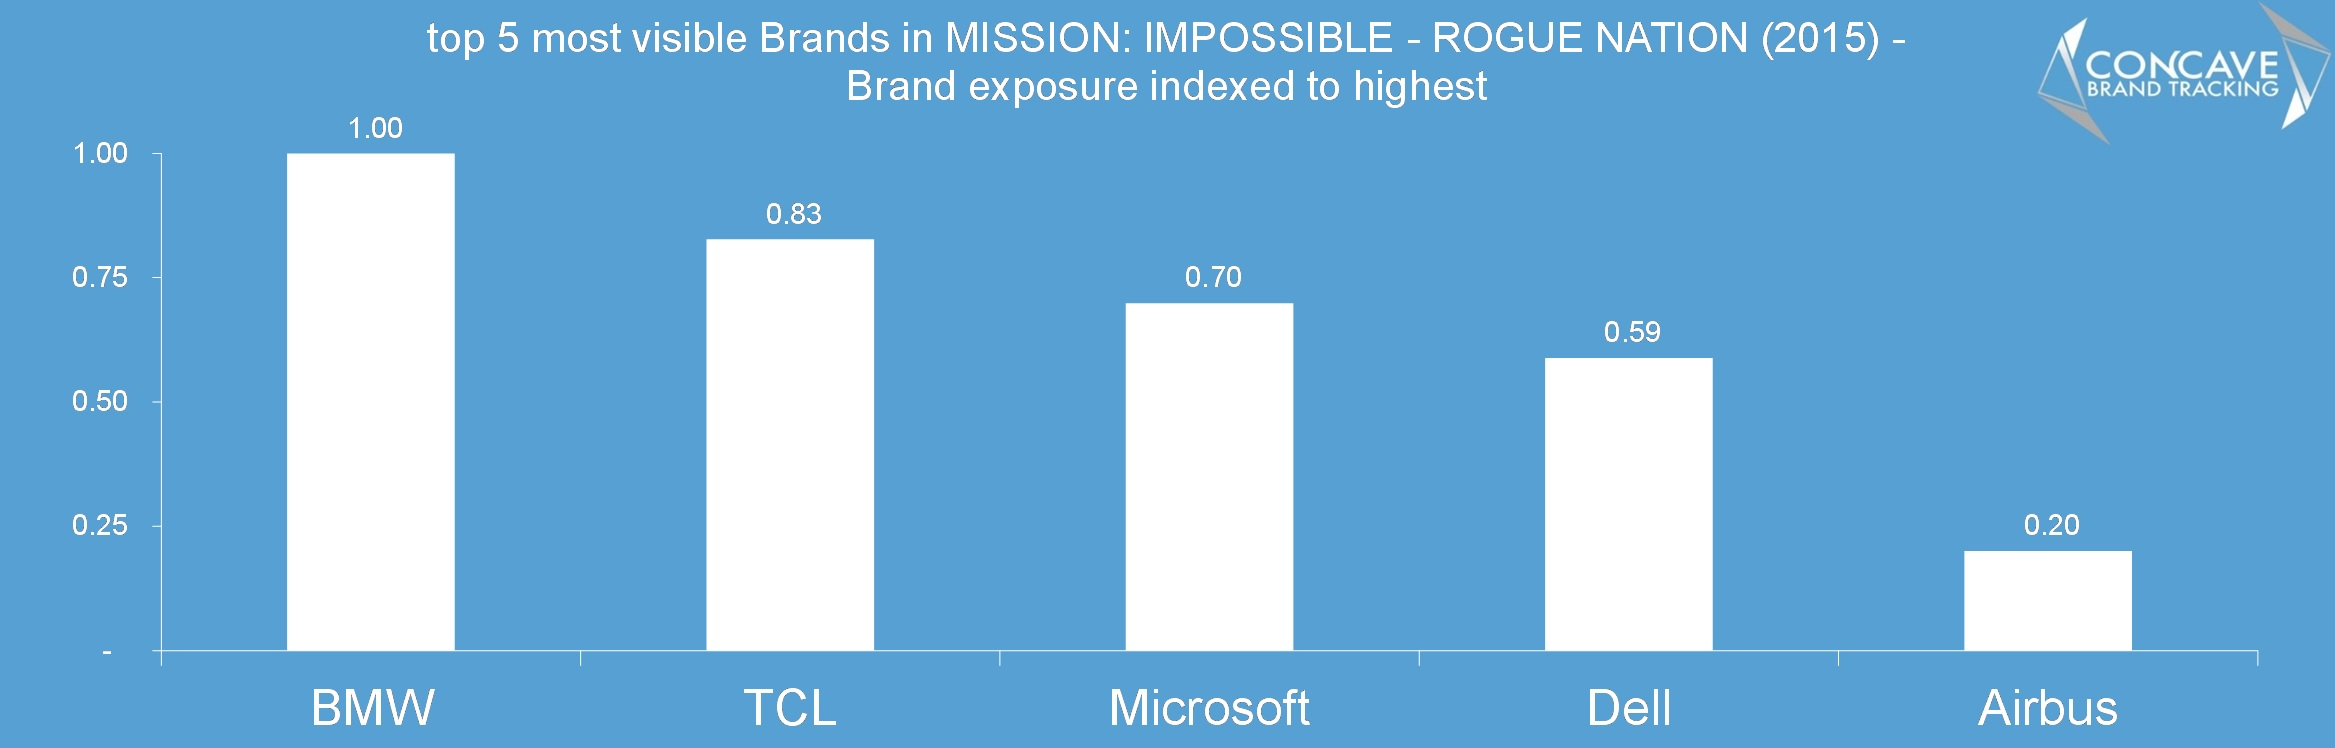 top 5 most visible Brands in mission impossible rogue nation